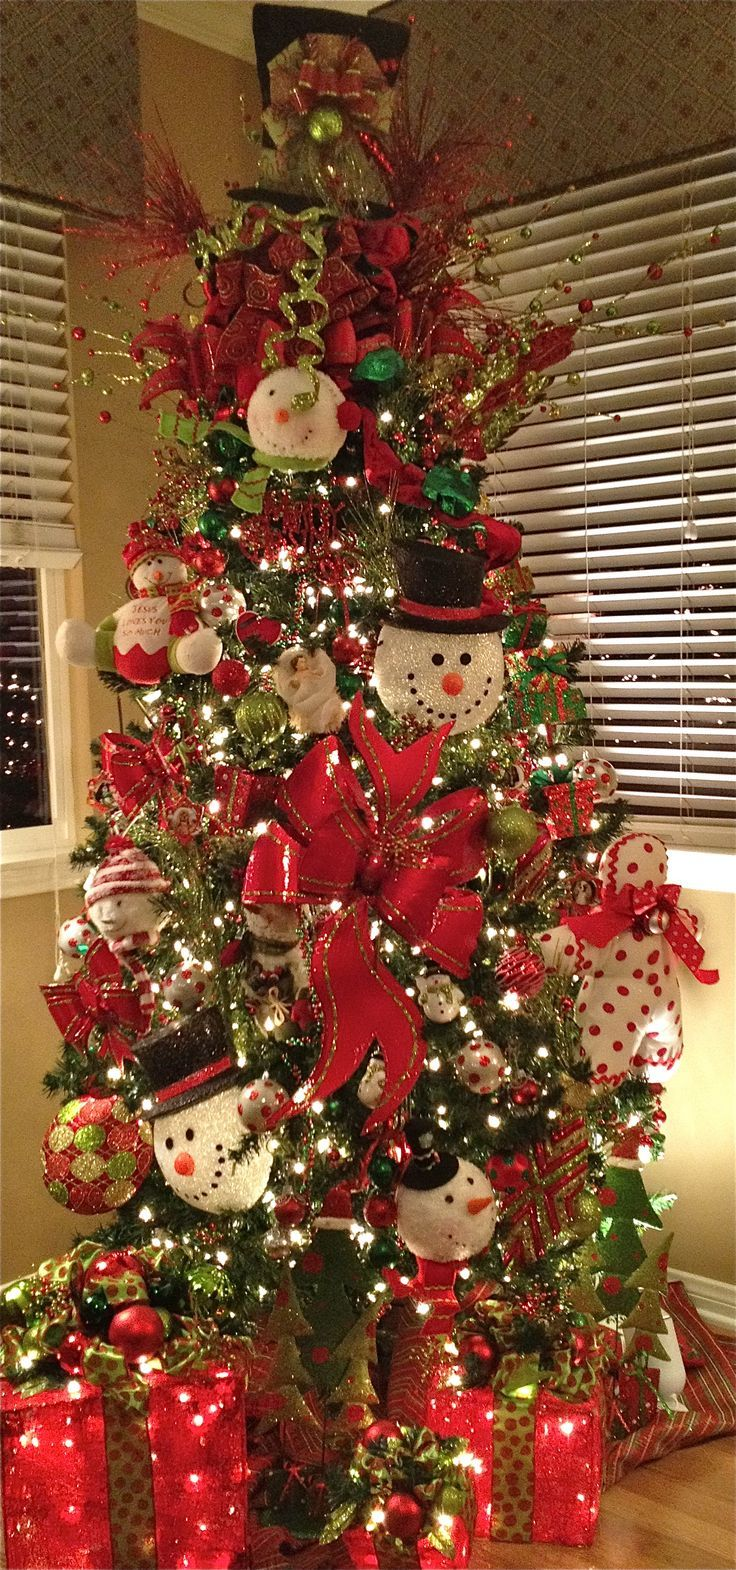 Christmas tree designs and decor ideas for 2014 15 Ideas for decorating a christmas tree